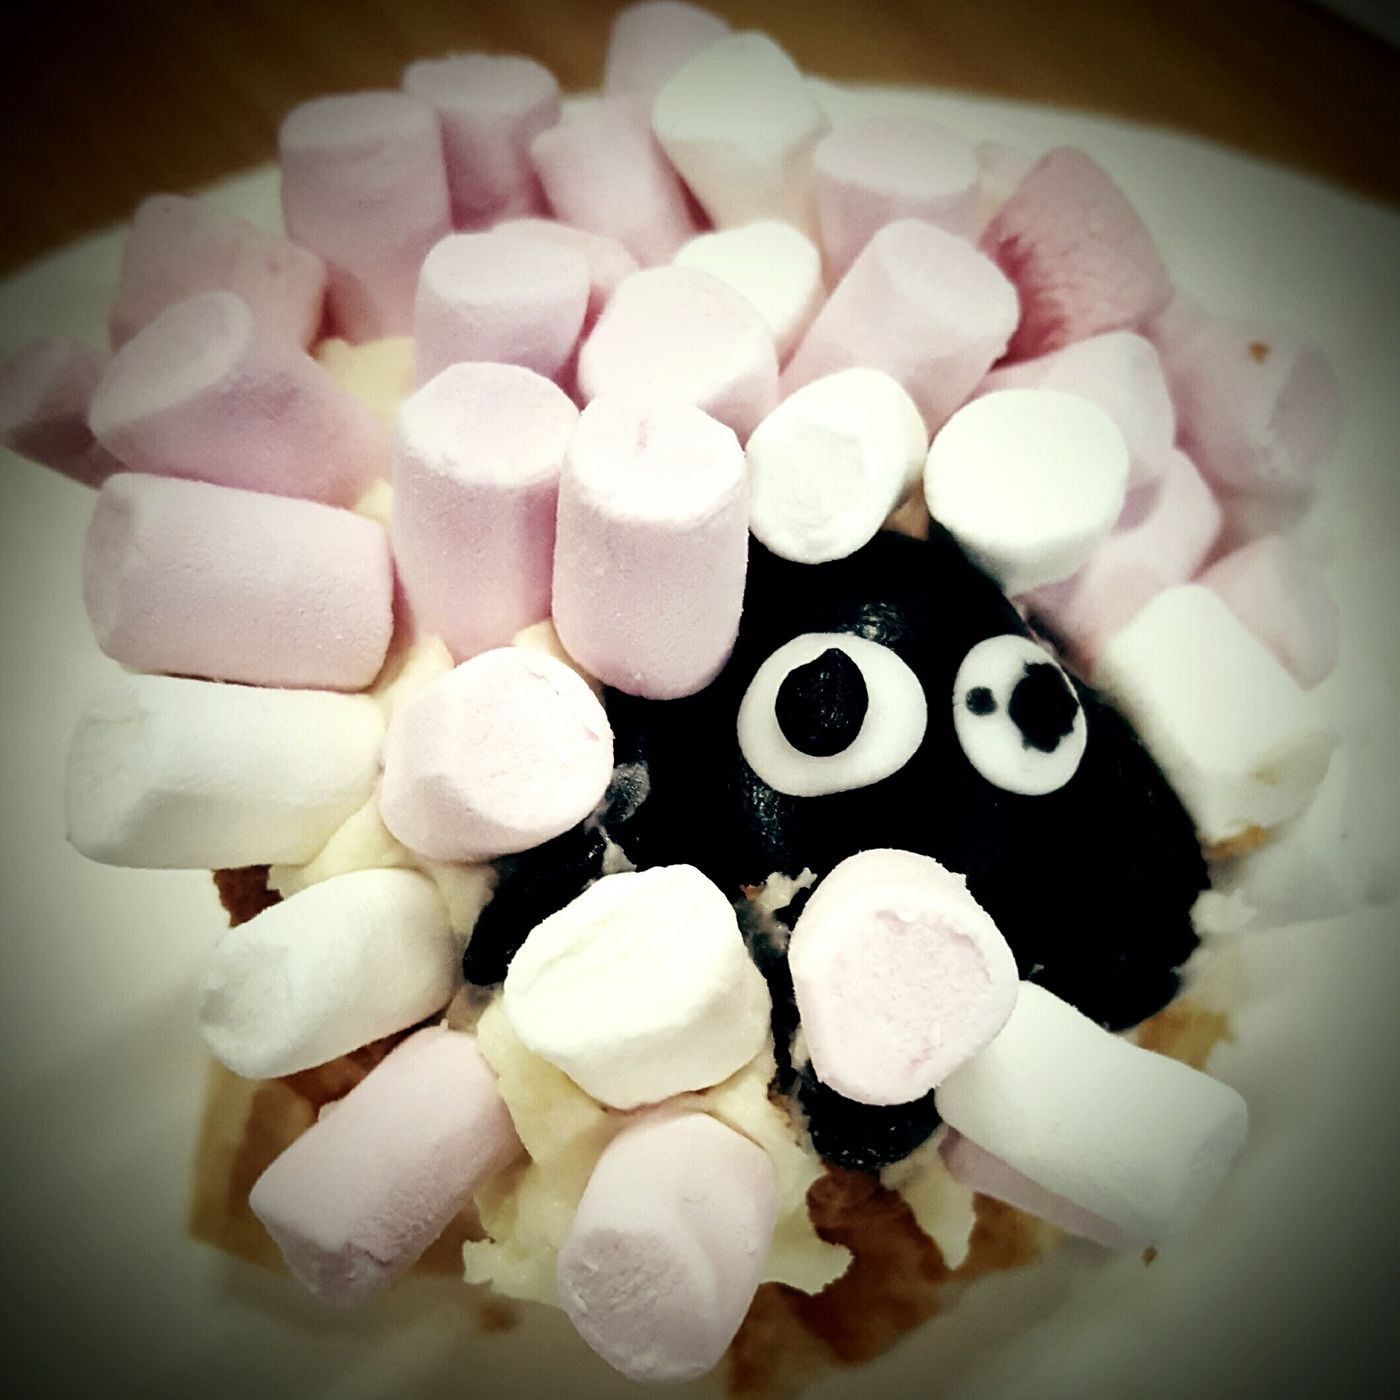 This Is Joy day 15. Marshmallows Sheep Sweet Food Close-up Marshmallow Messy Church